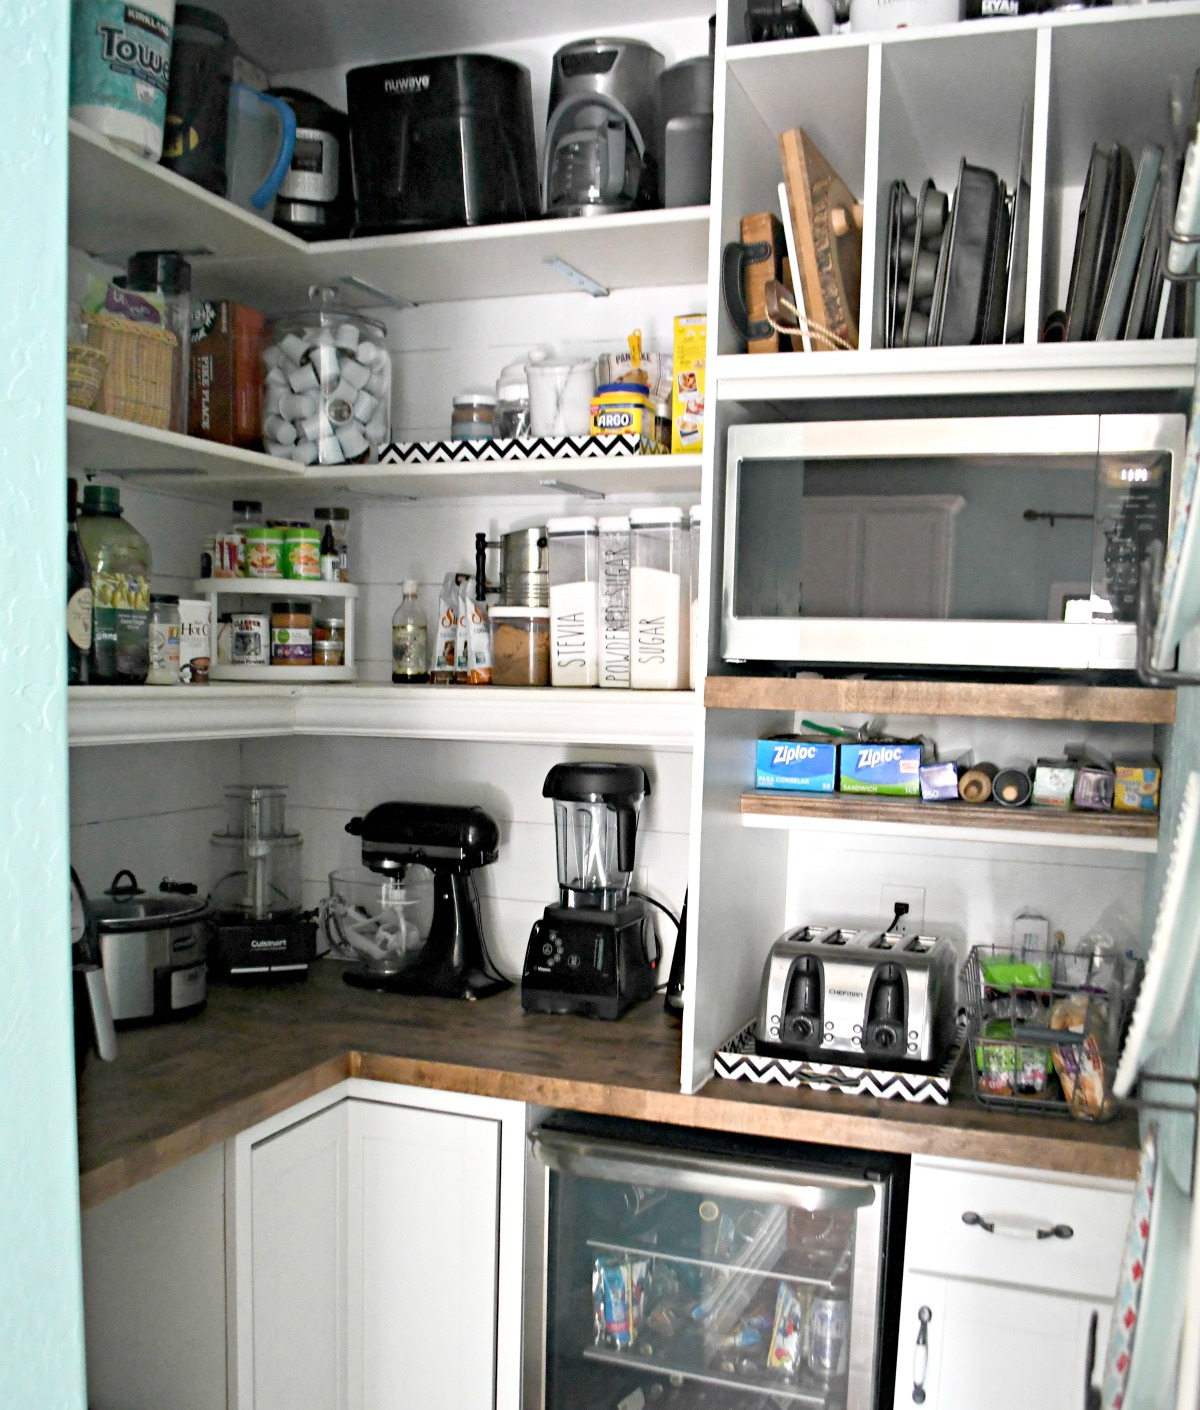 inside view of the pantry remodel with built in appliances, pantry goods, and pans